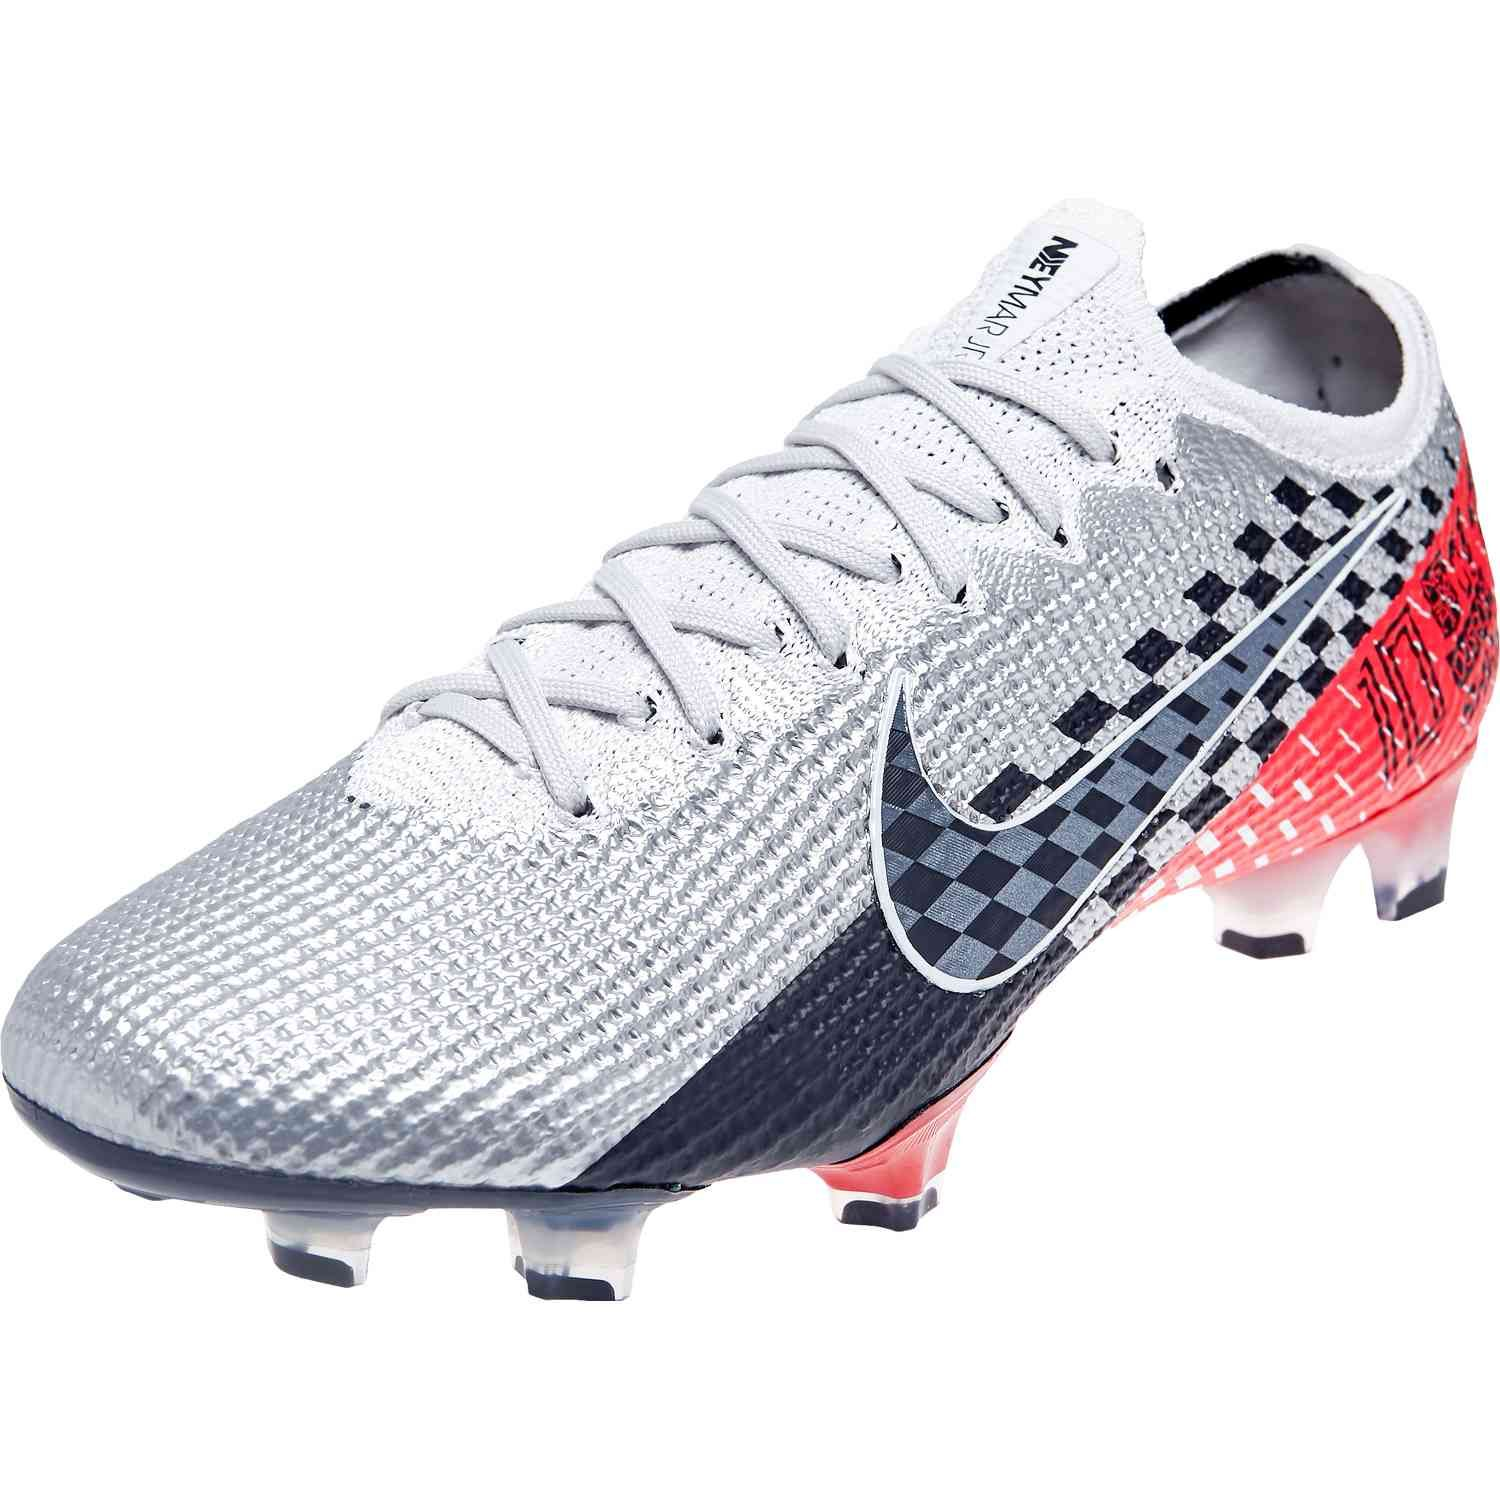 Nike Neymar Mercurial Vapor 13 Elite Fg Chrome Black Red Orbit Soccerpro Nike Soccer Shoes Adidas Soccer Shoes Soccer Cleats Nike